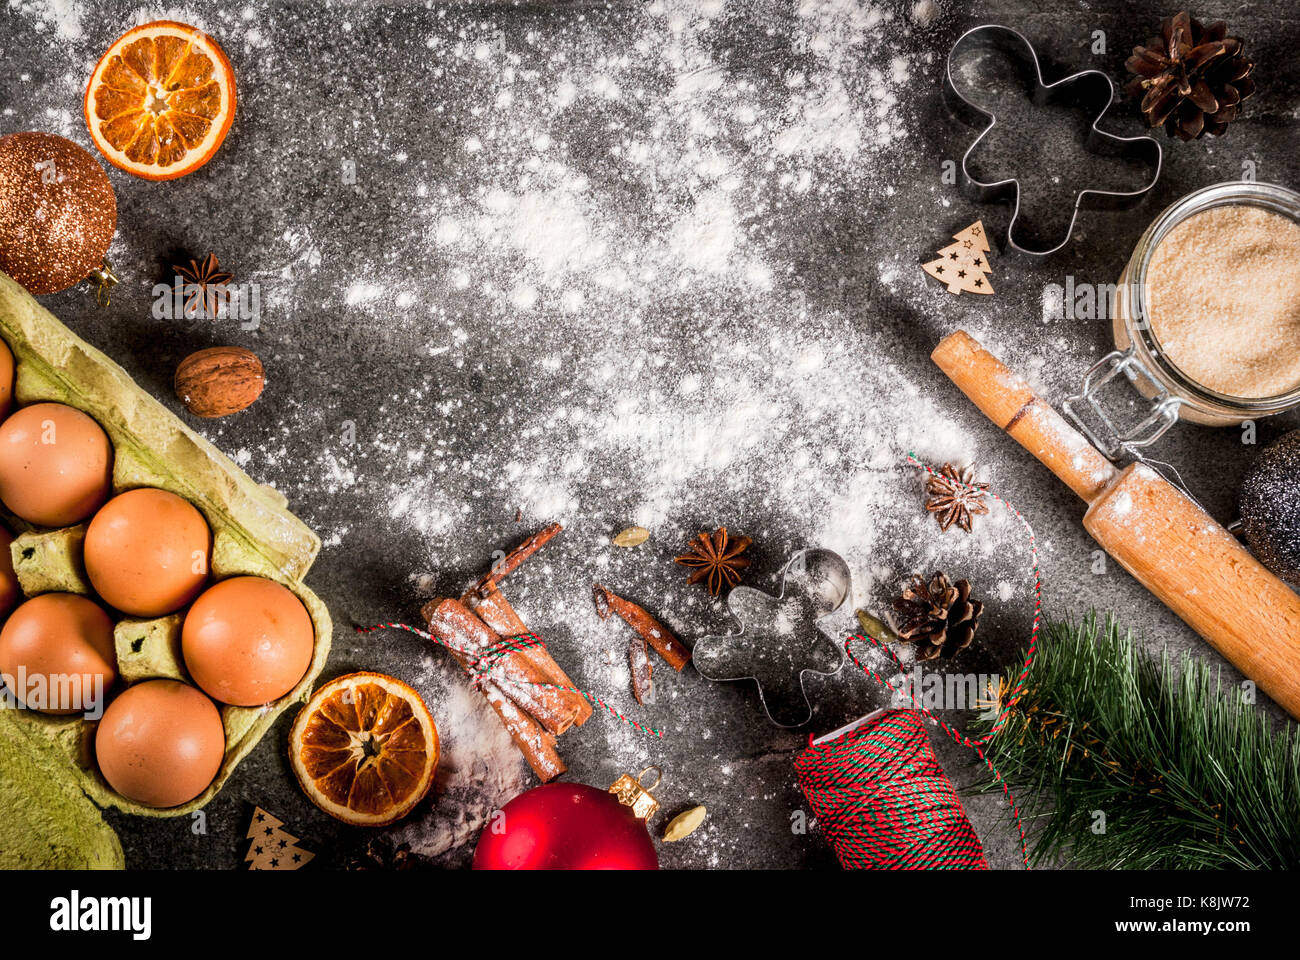 Christmas new year holiday cooking background for Baking oranges for christmas decoration